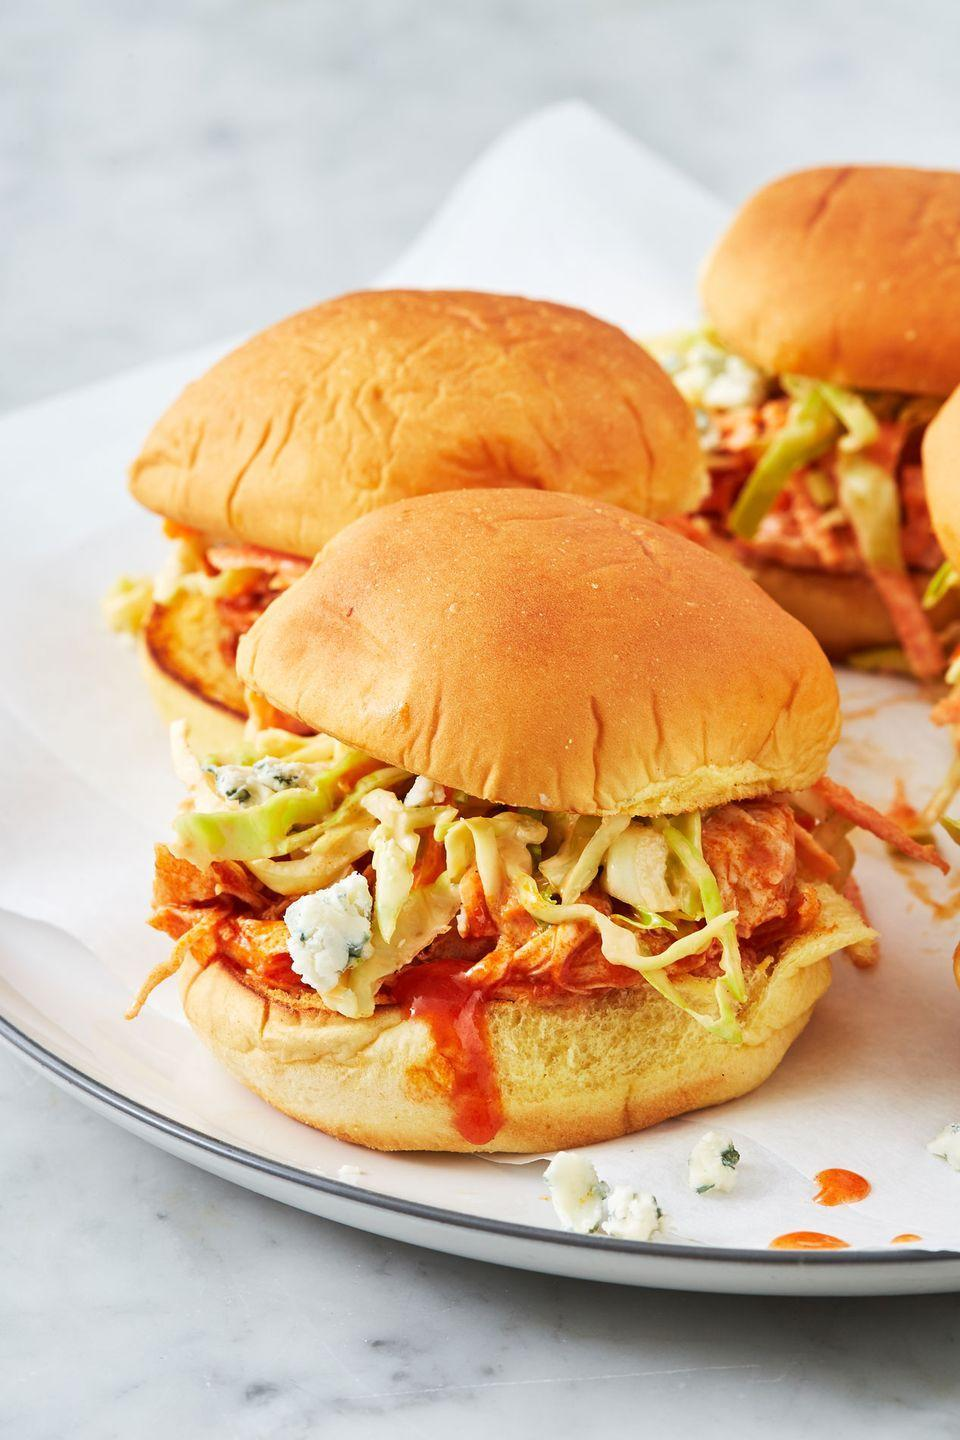 """<p>Ranch coleslaw? Yes please.</p><p>Get the recipe from <a href=""""https://www.delish.com/cooking/recipe-ideas/a27290041/instant-pot-buffalo-chicken-recipe/"""" rel=""""nofollow noopener"""" target=""""_blank"""" data-ylk=""""slk:Delish"""" class=""""link rapid-noclick-resp"""">Delish</a>.</p>"""